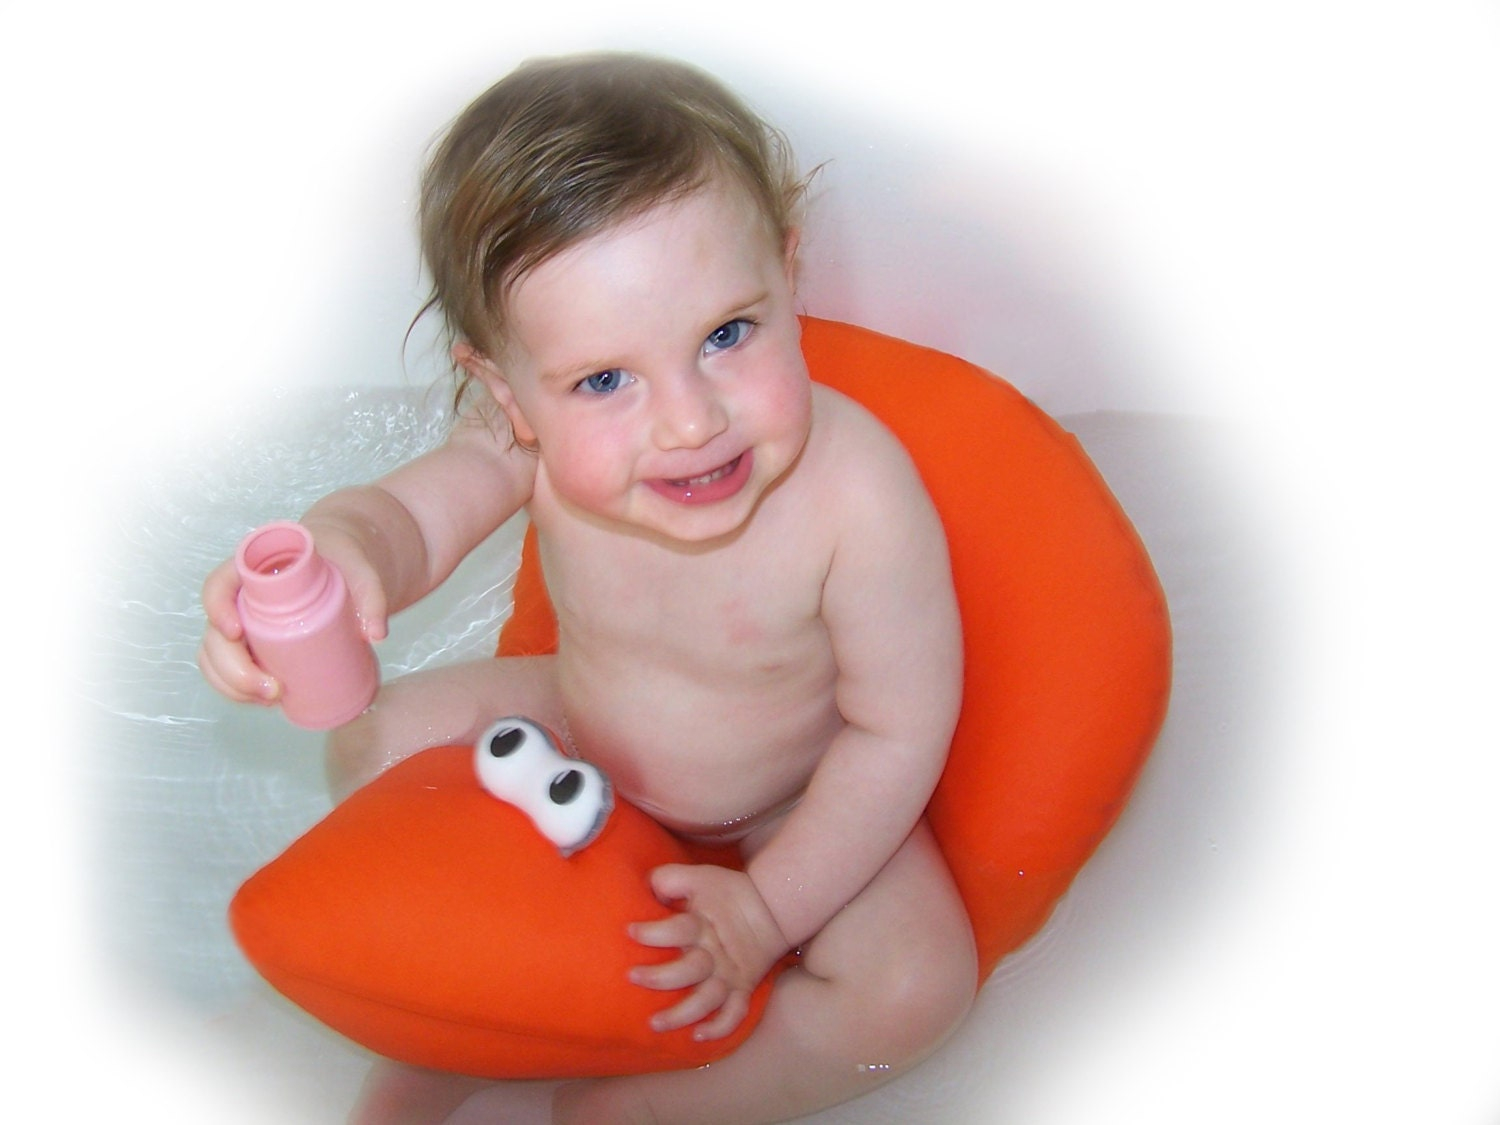 shibaba baby bath seat ring chair tub seats babies safety